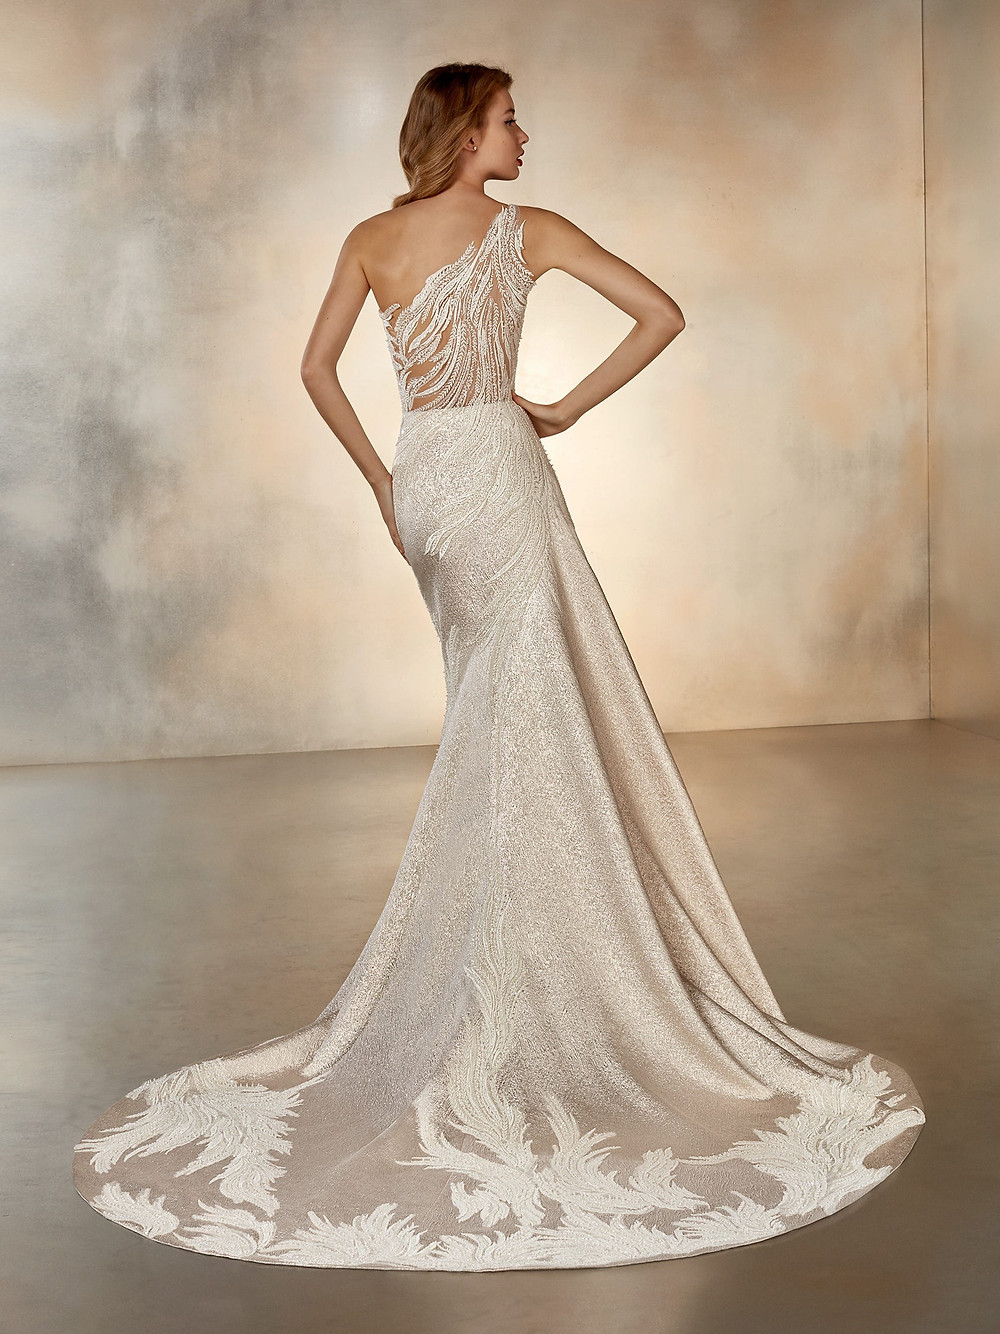 A champagne color one shoulder wedding dress with plenty of sparkle and shine and floral embellishments